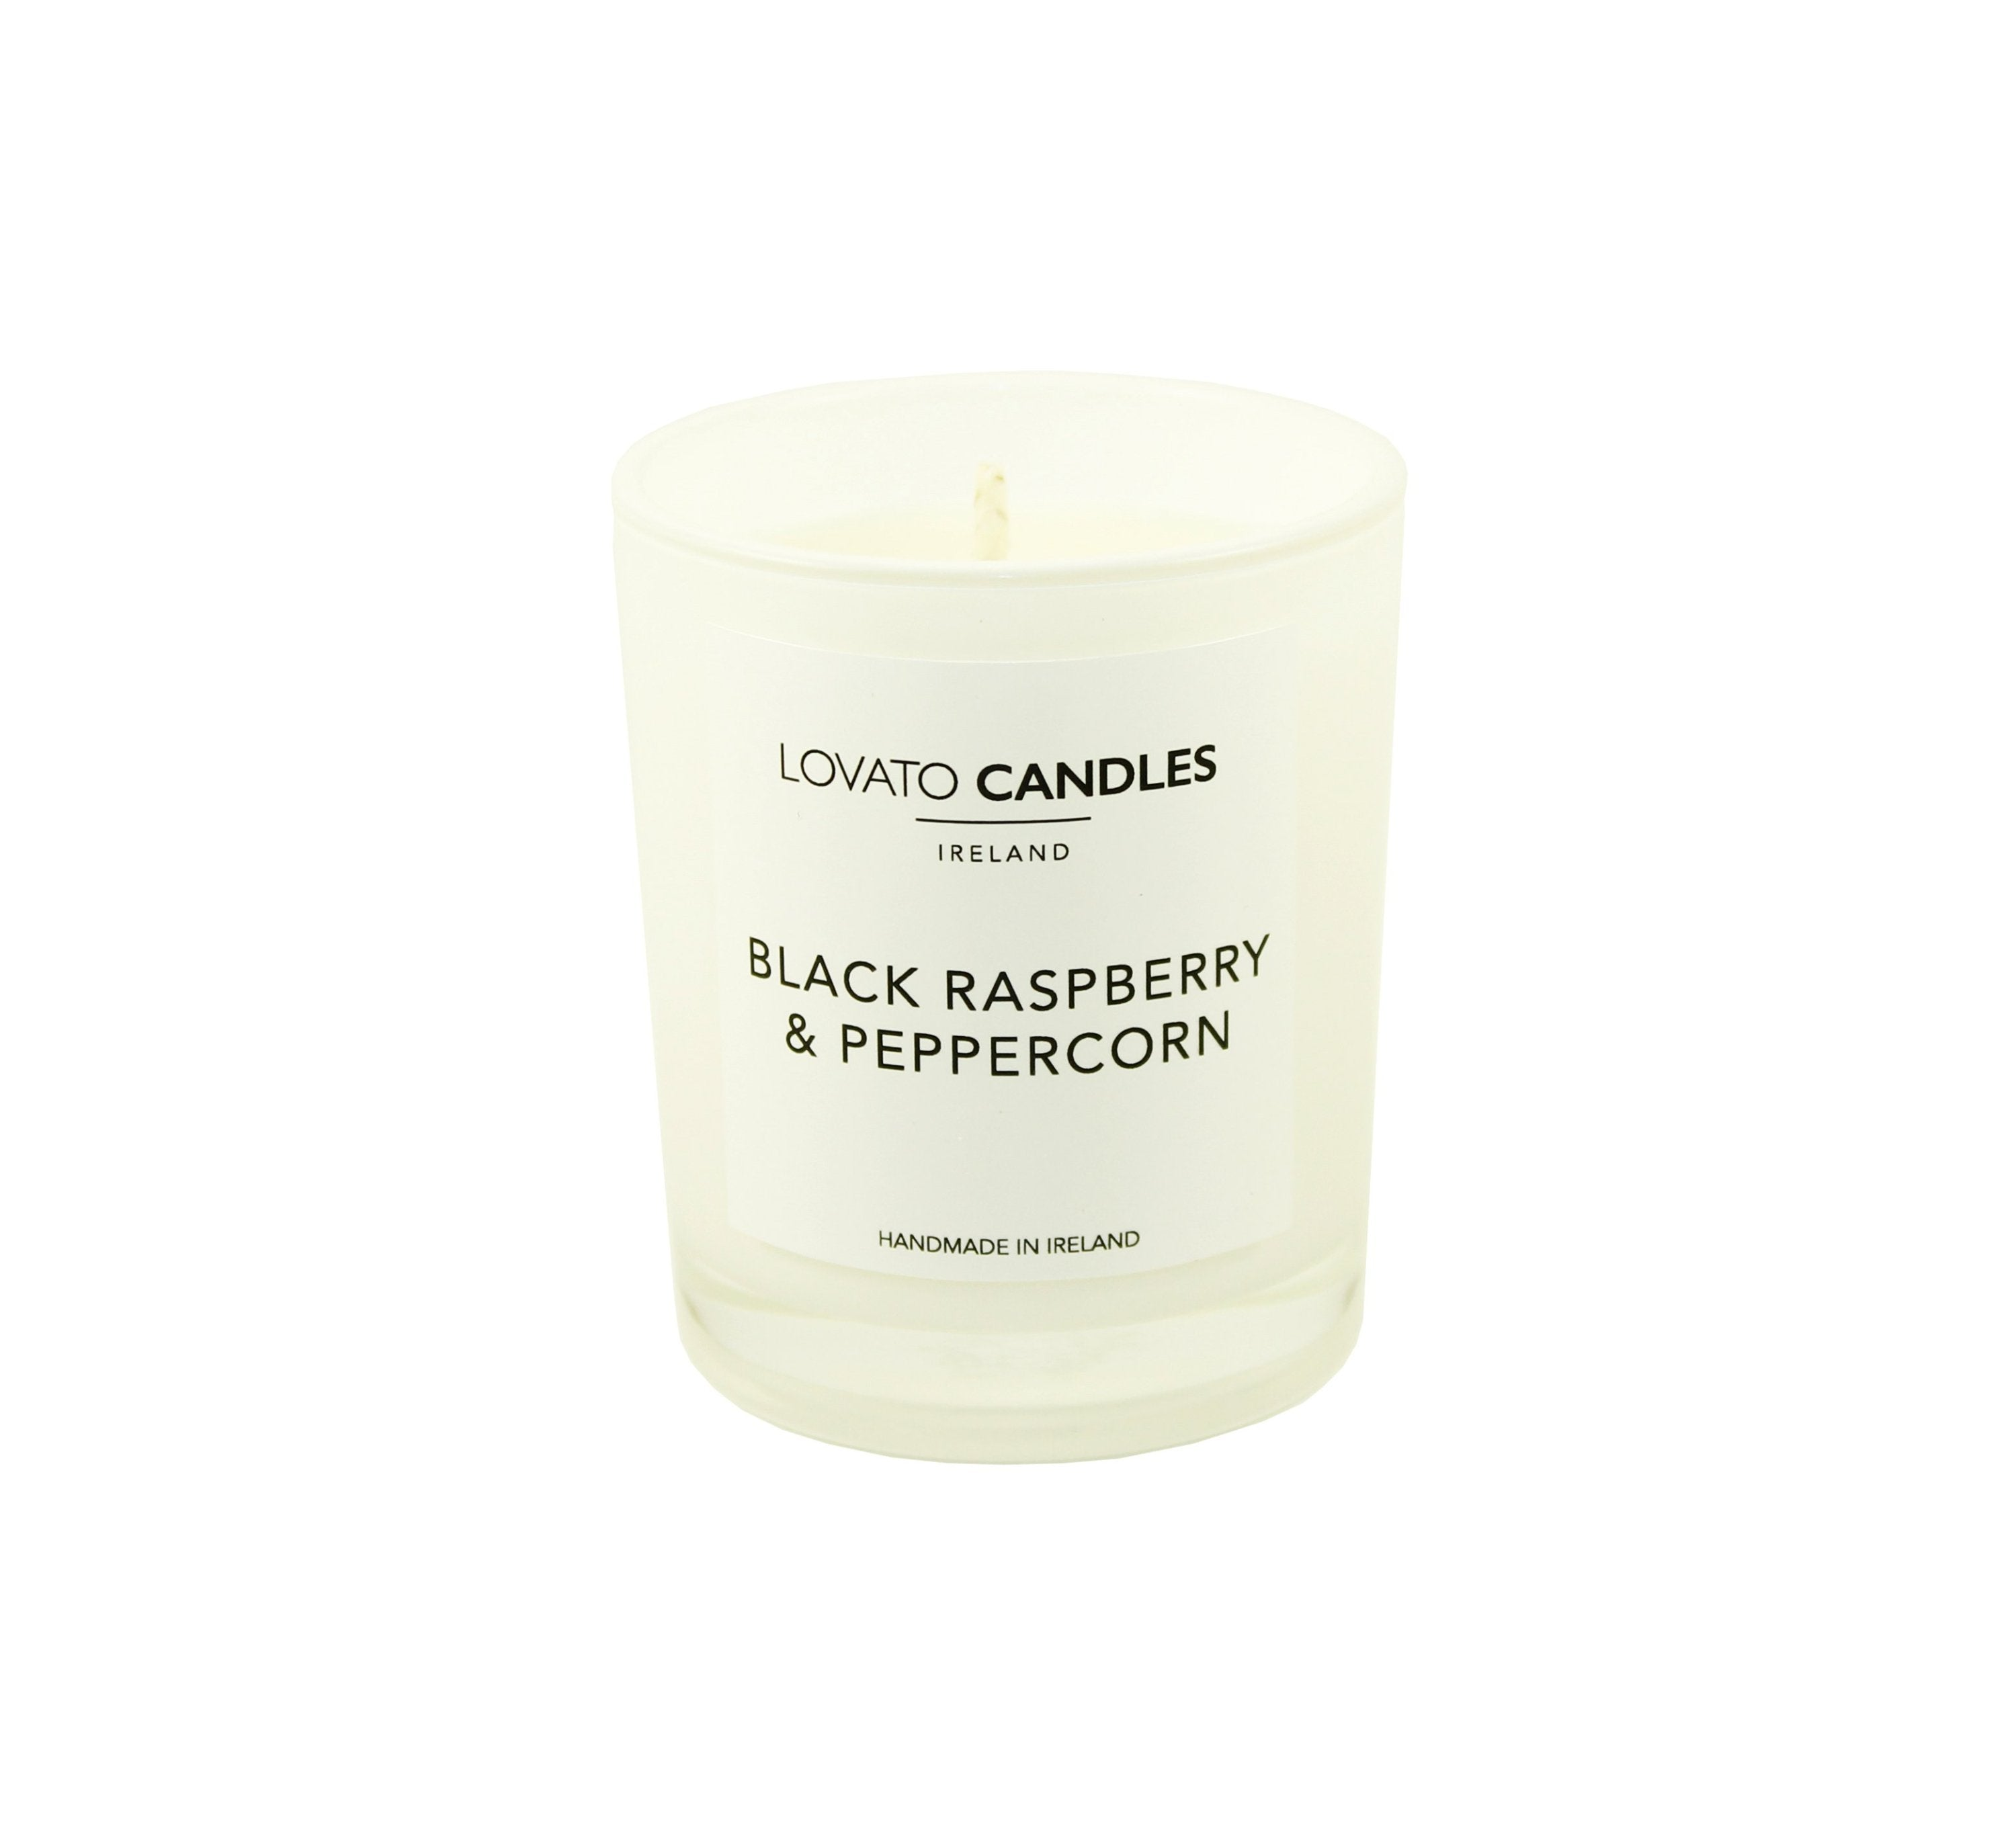 White Votive Candle - Black Raspberry & Peppercorn - Lovato Candles